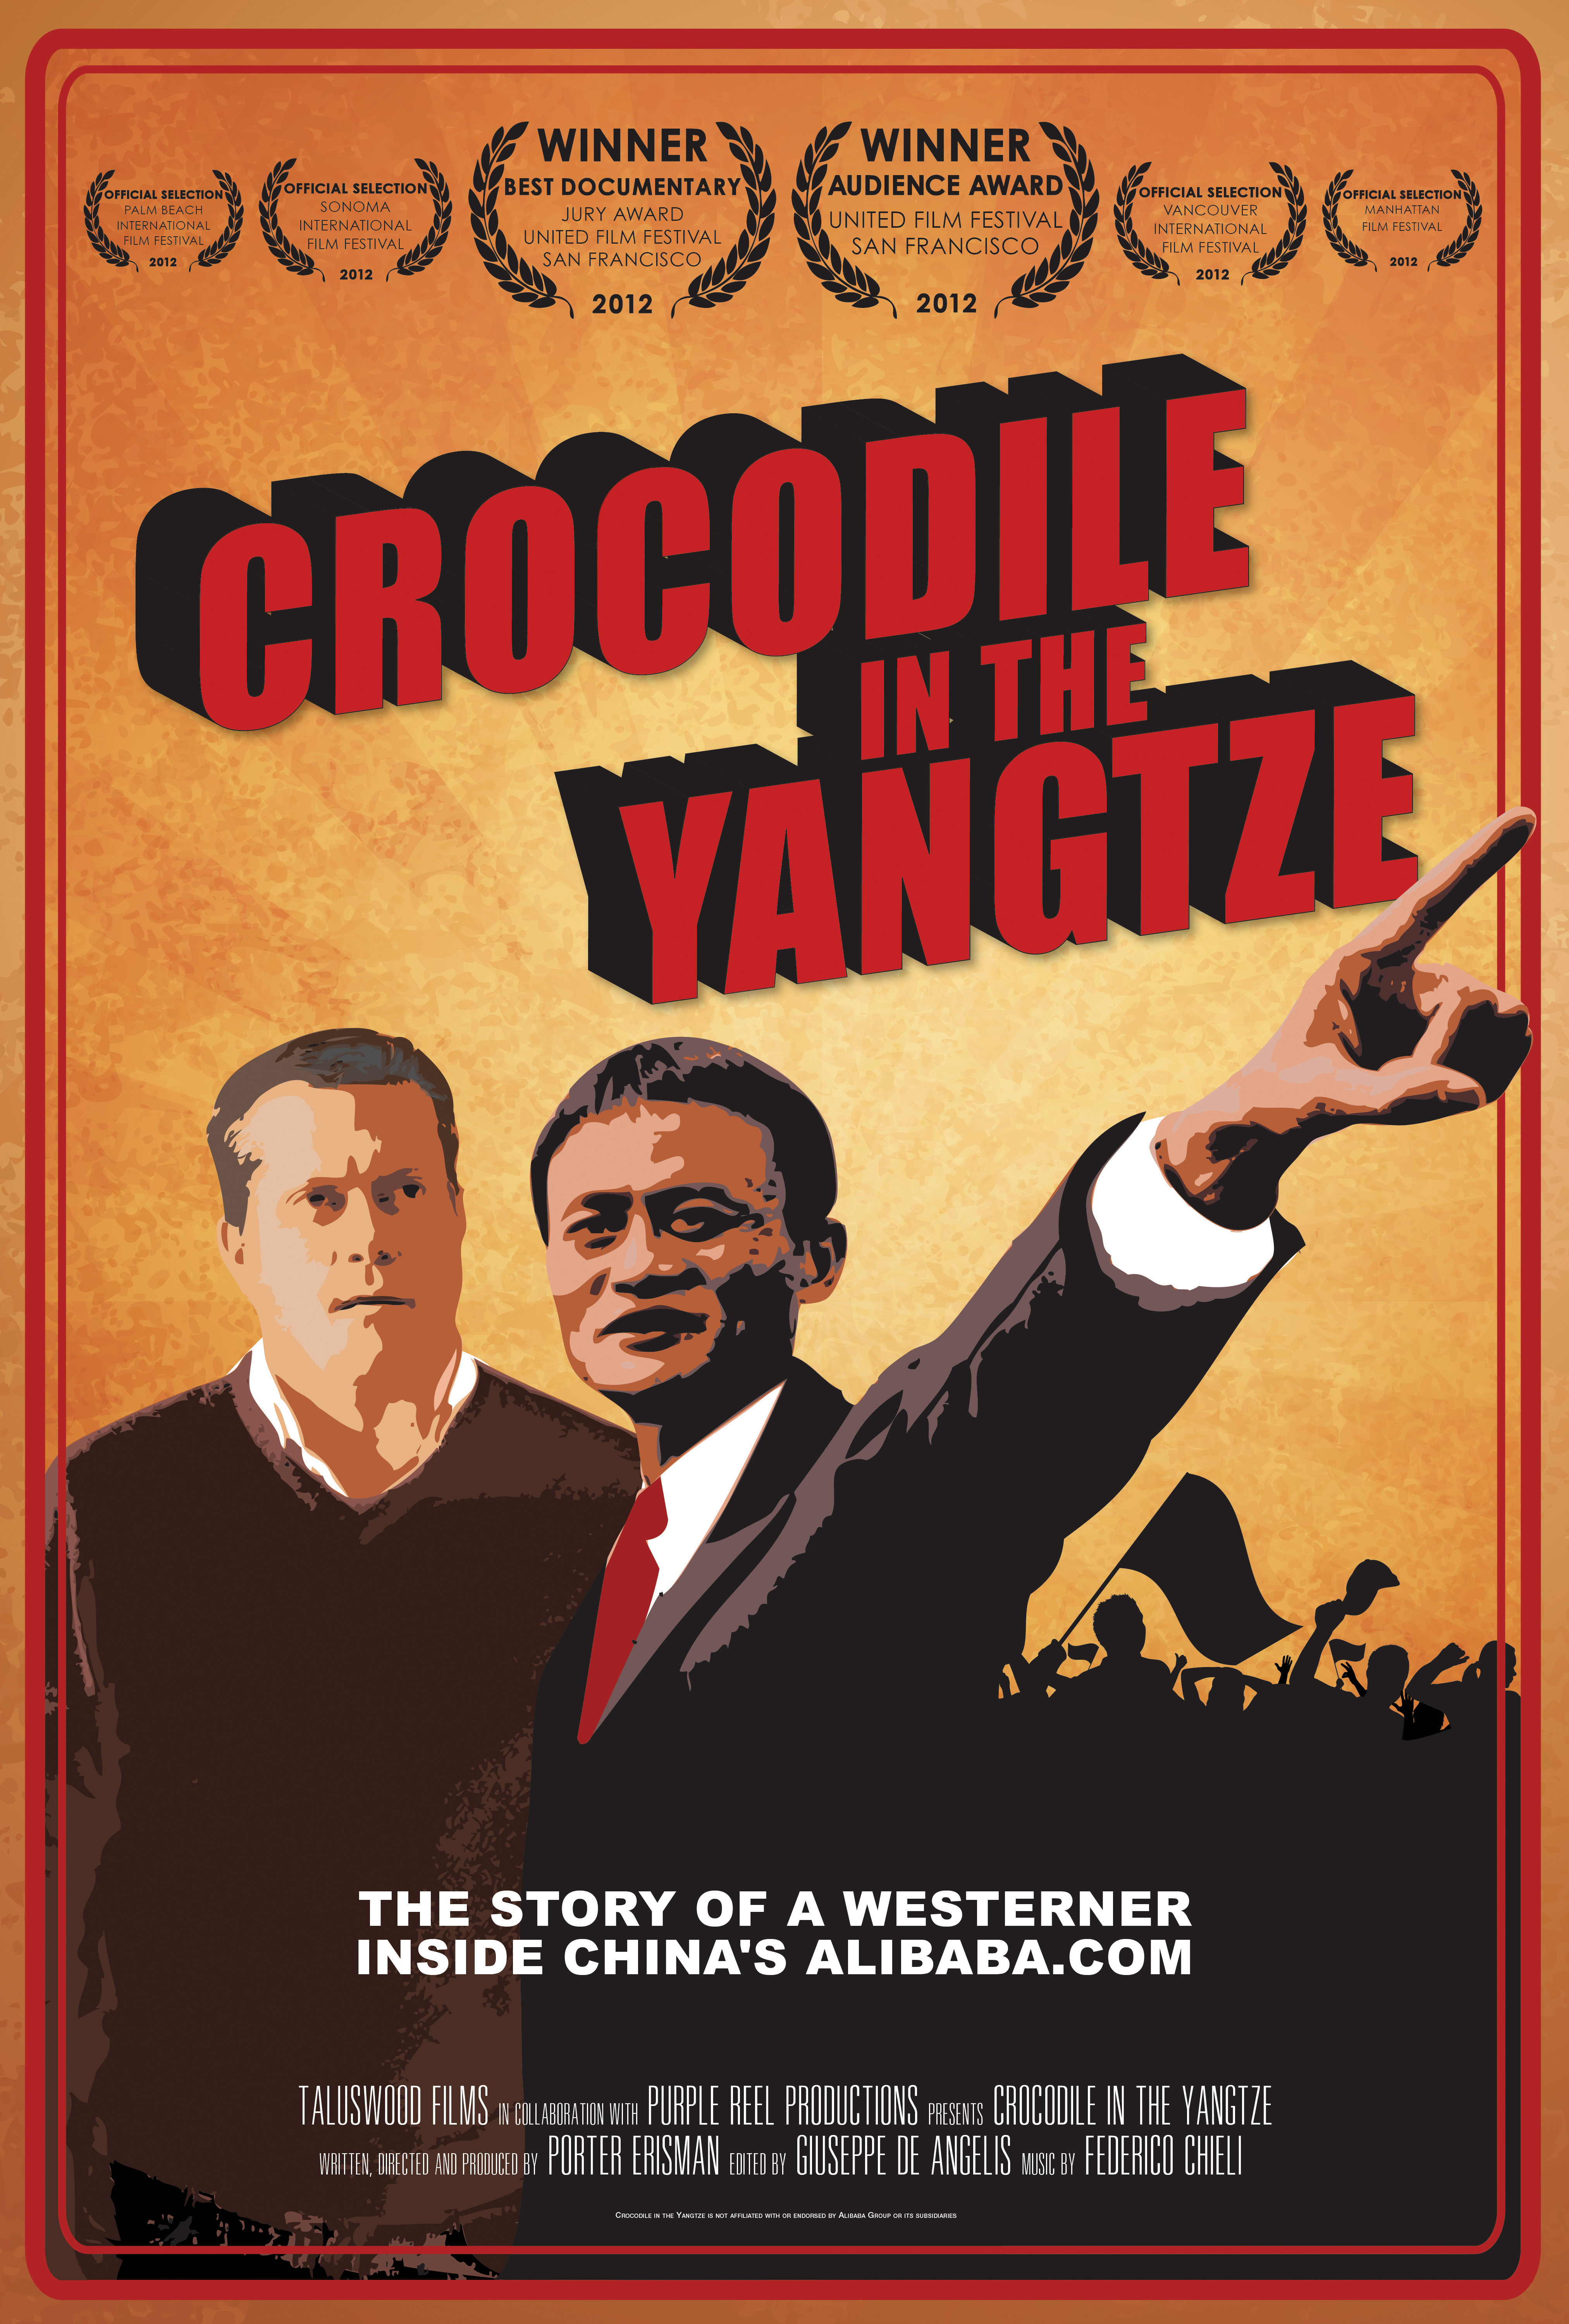 Crocodile in the yangtze – purchase and download.